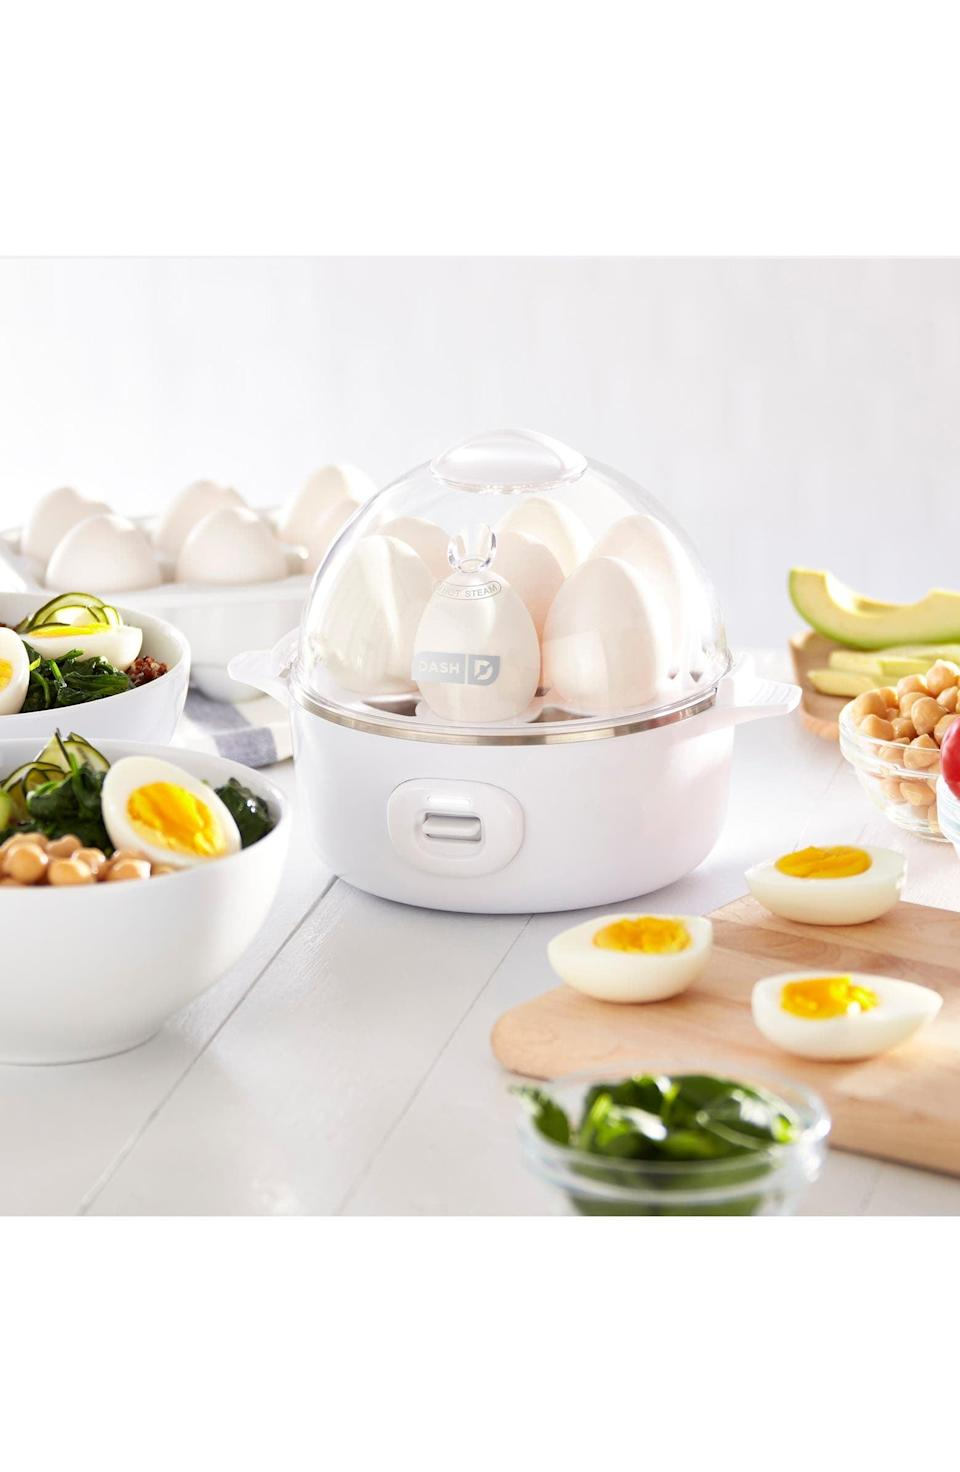 <p>This <span>Dash Express Egg Cooker</span> ($20) is an awesome, affordable gadget they'll use over and over again.</p>